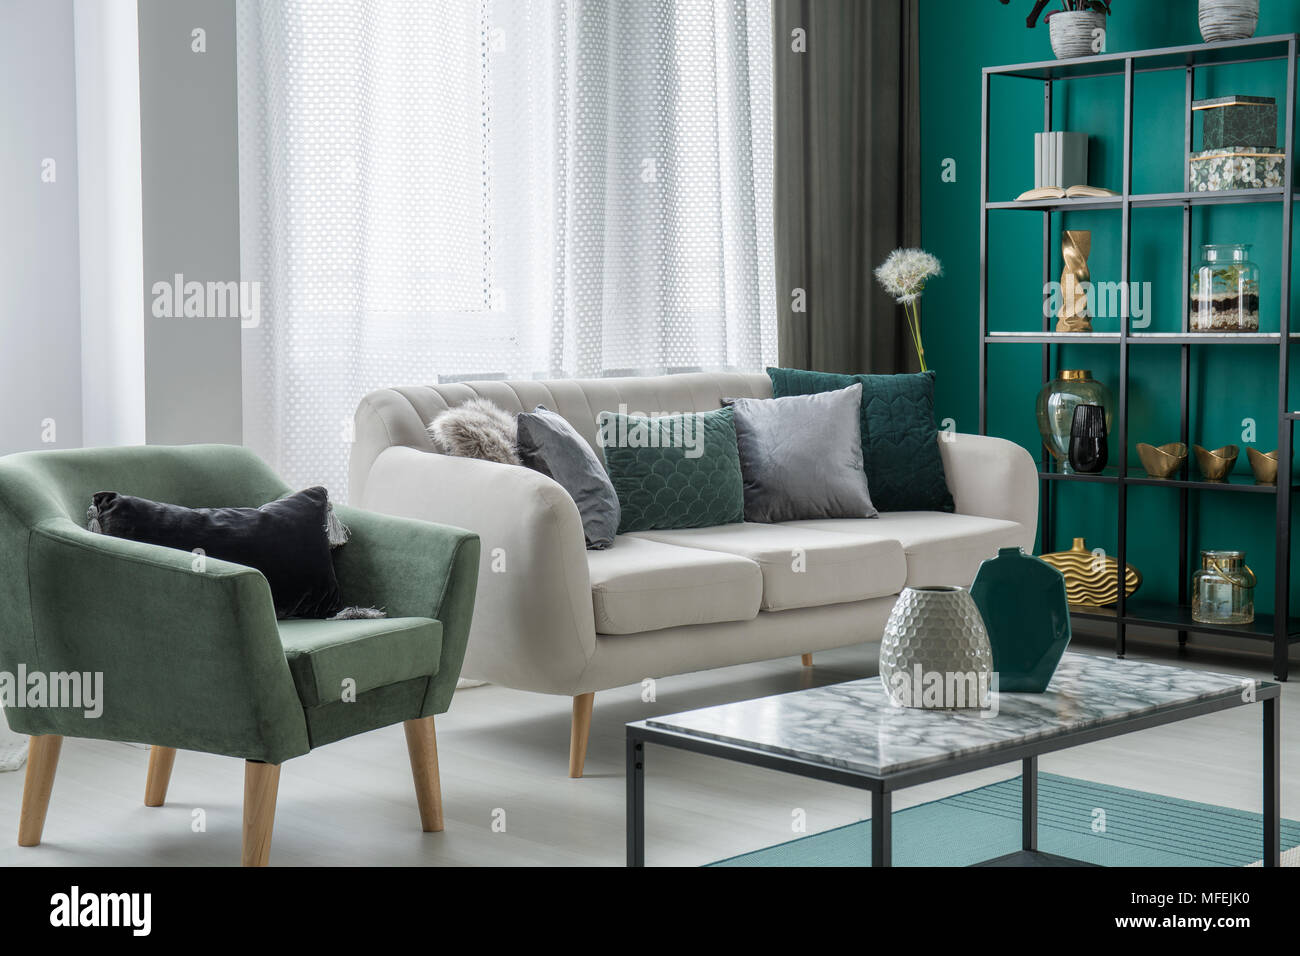 Amazing Green And Silver Decorative Pillows Placed On A Light Grey Andrewgaddart Wooden Chair Designs For Living Room Andrewgaddartcom